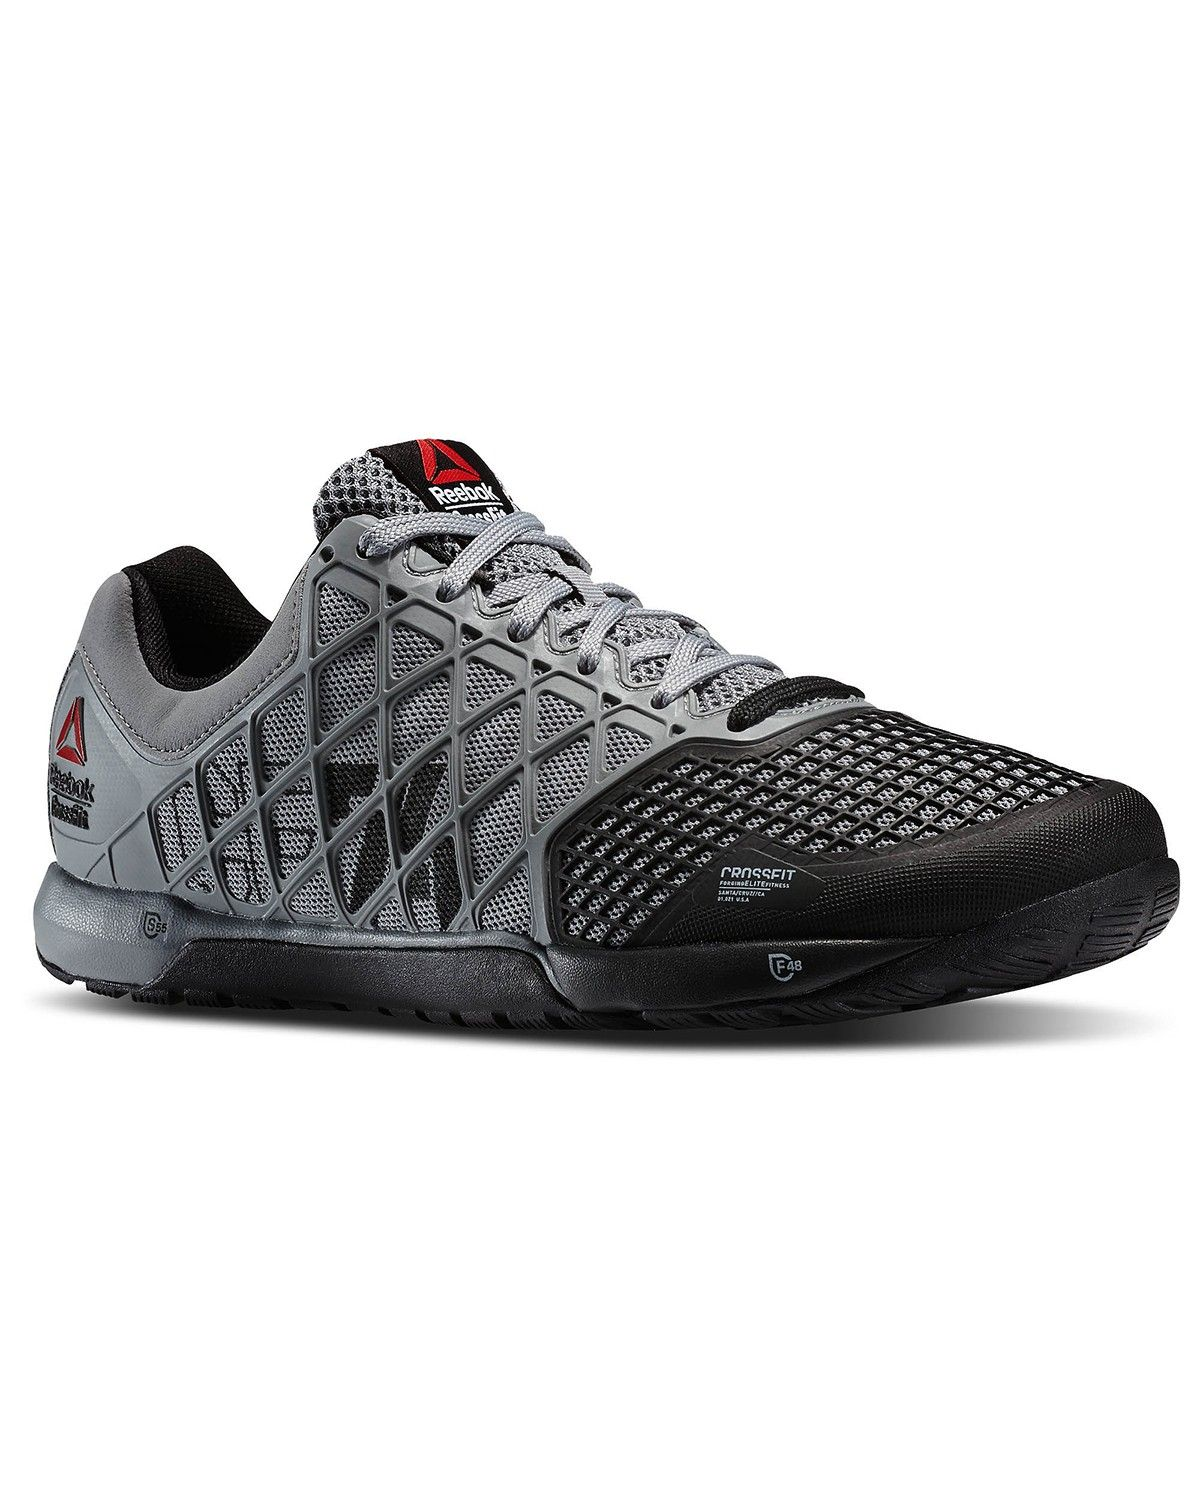 official photos a6ffa c2347 Mens Reebok CrossFit Nano 4.0 - New Gear - Men  CrossFit HQ Store